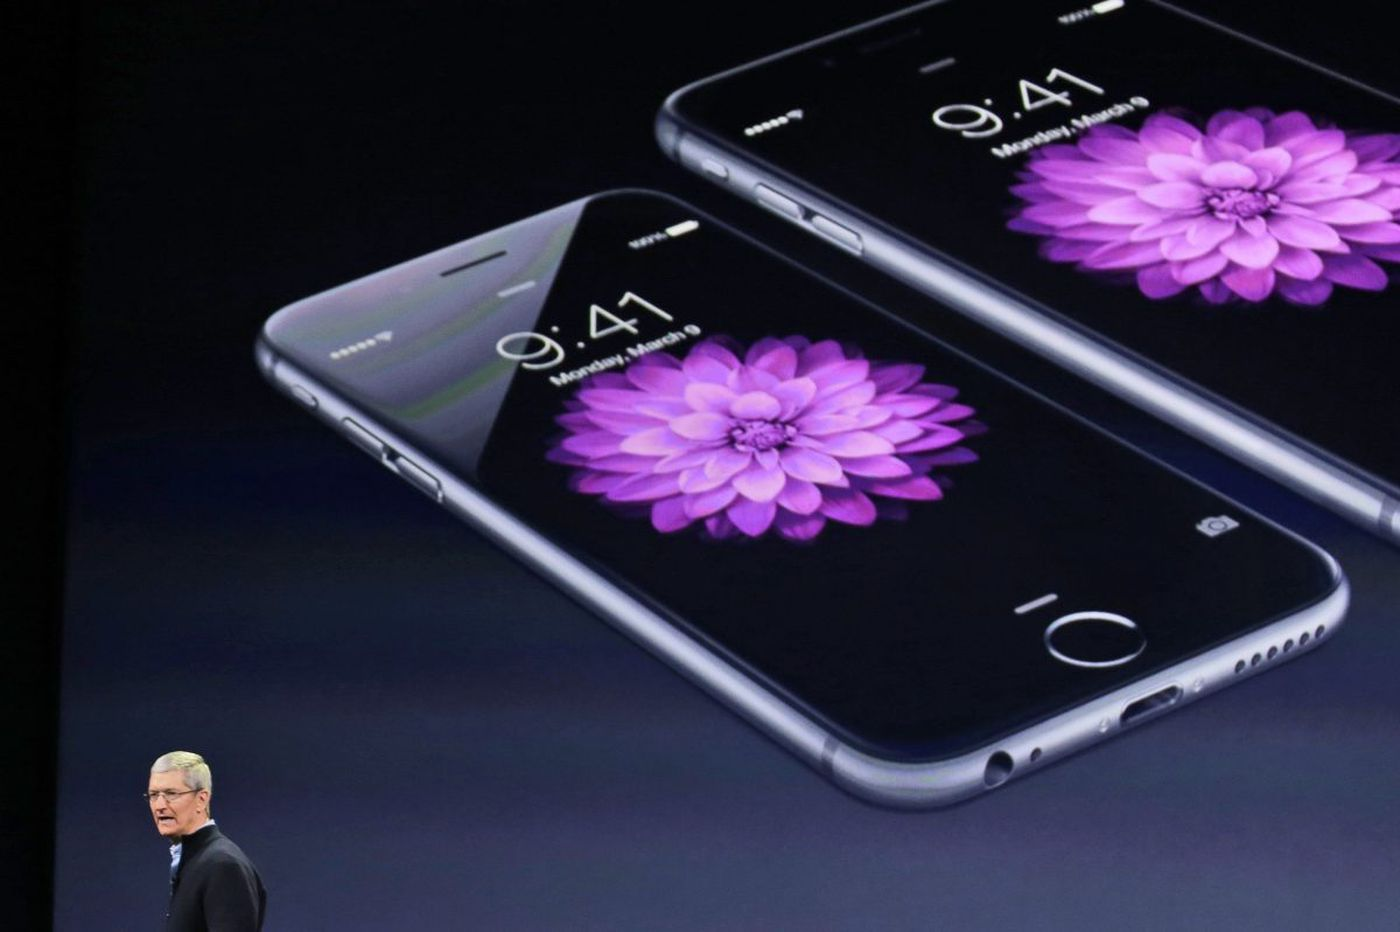 iPhones and us: It's time for independent study, public awareness and regulation   Editorial